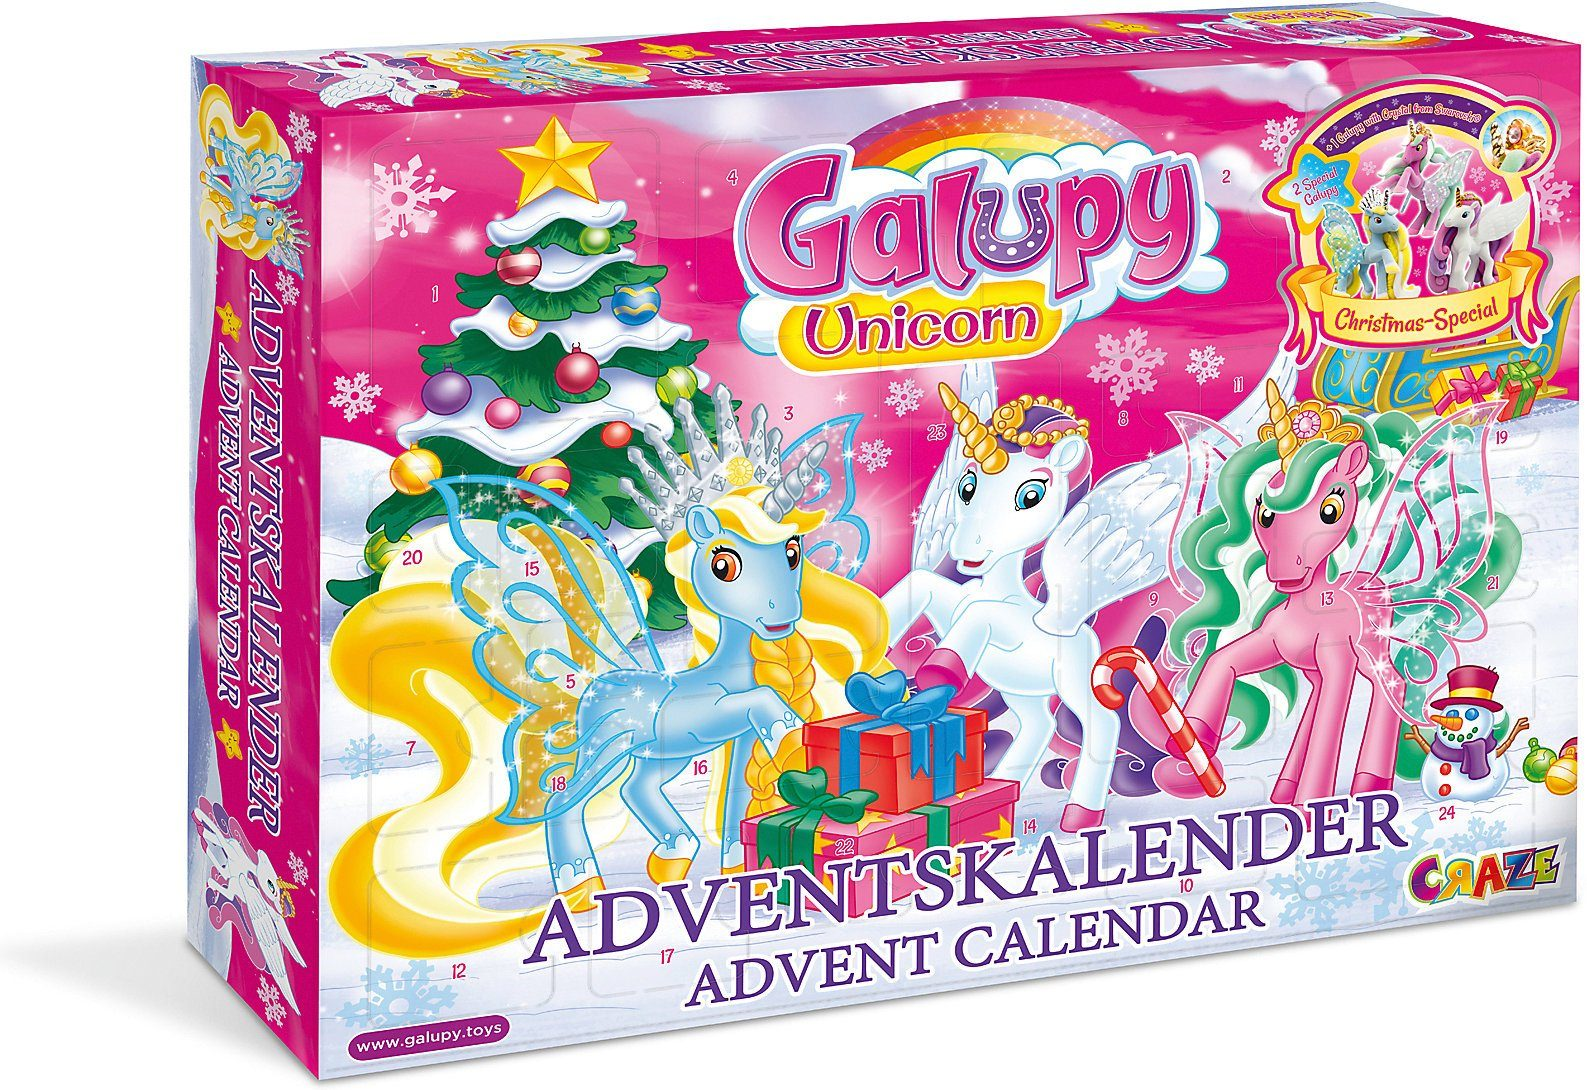 Galupy Unicorn Adventskalender